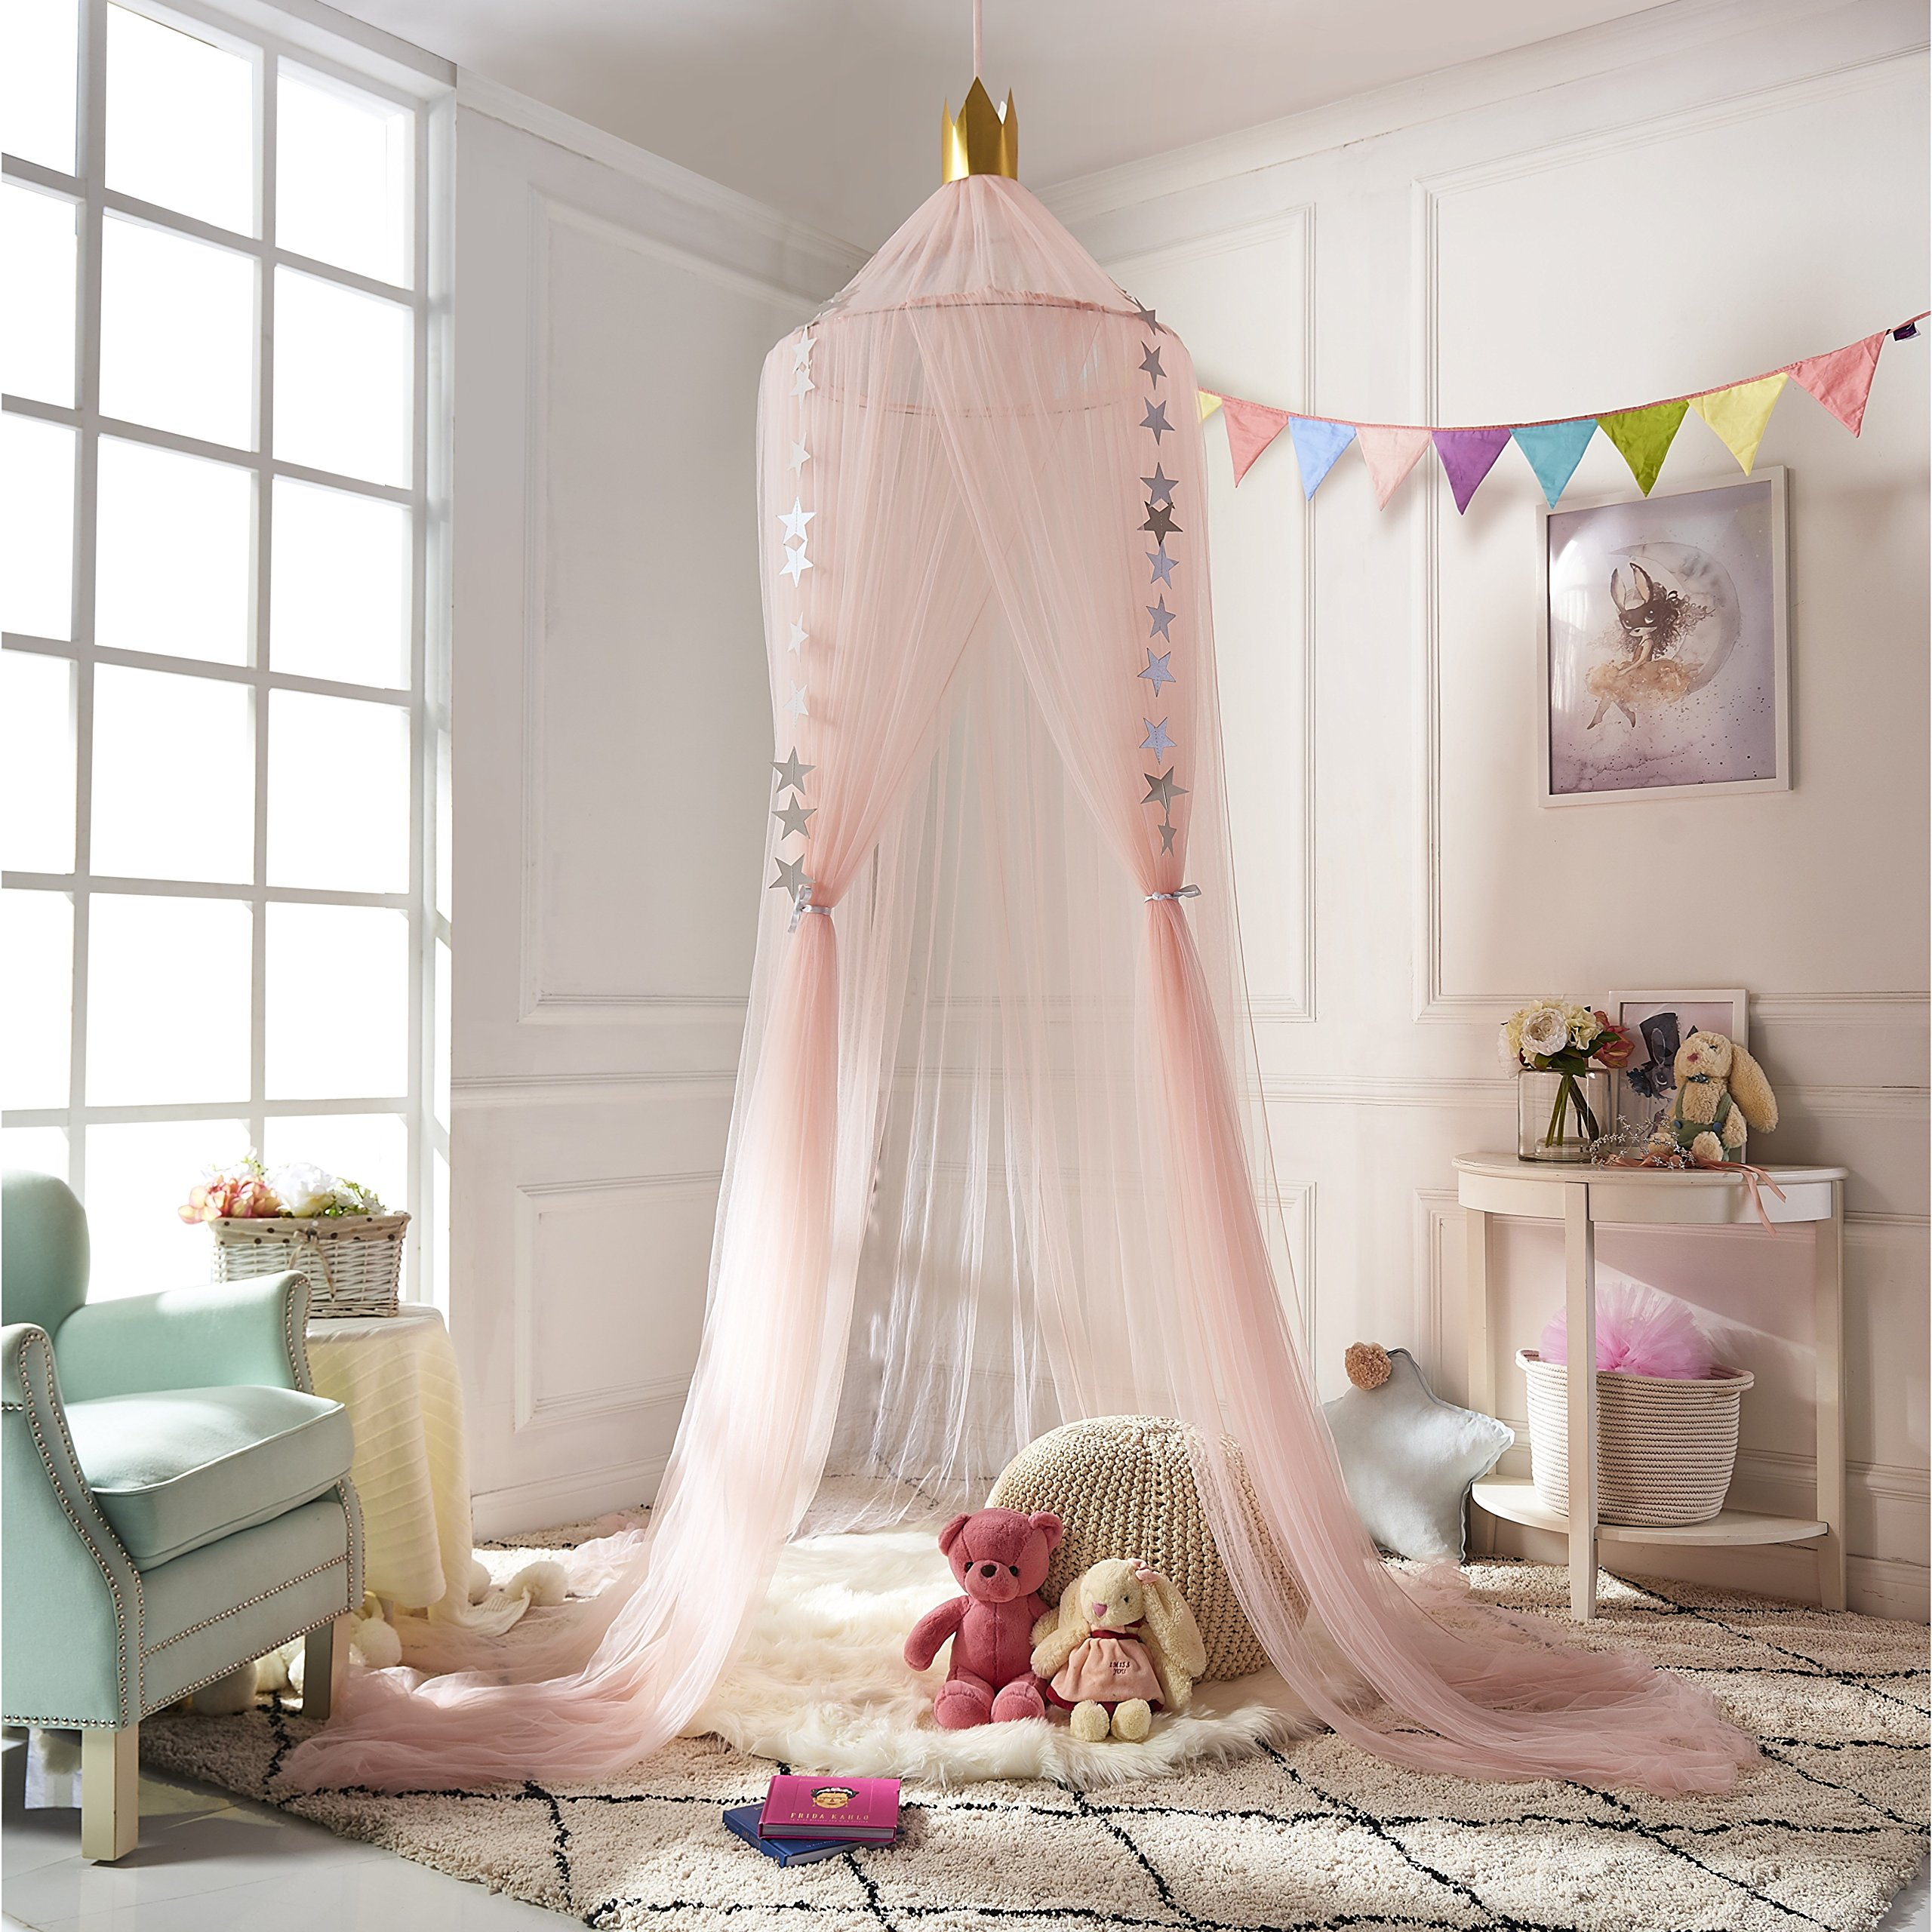 Lace Princess Style Mosquito Net Canopy Netting Curtain Dome Dual Color Round Canopy Mosquito Net Bed Curtain Netting Ladieshow Mosquito Pink Purple Decorated for Children Bed